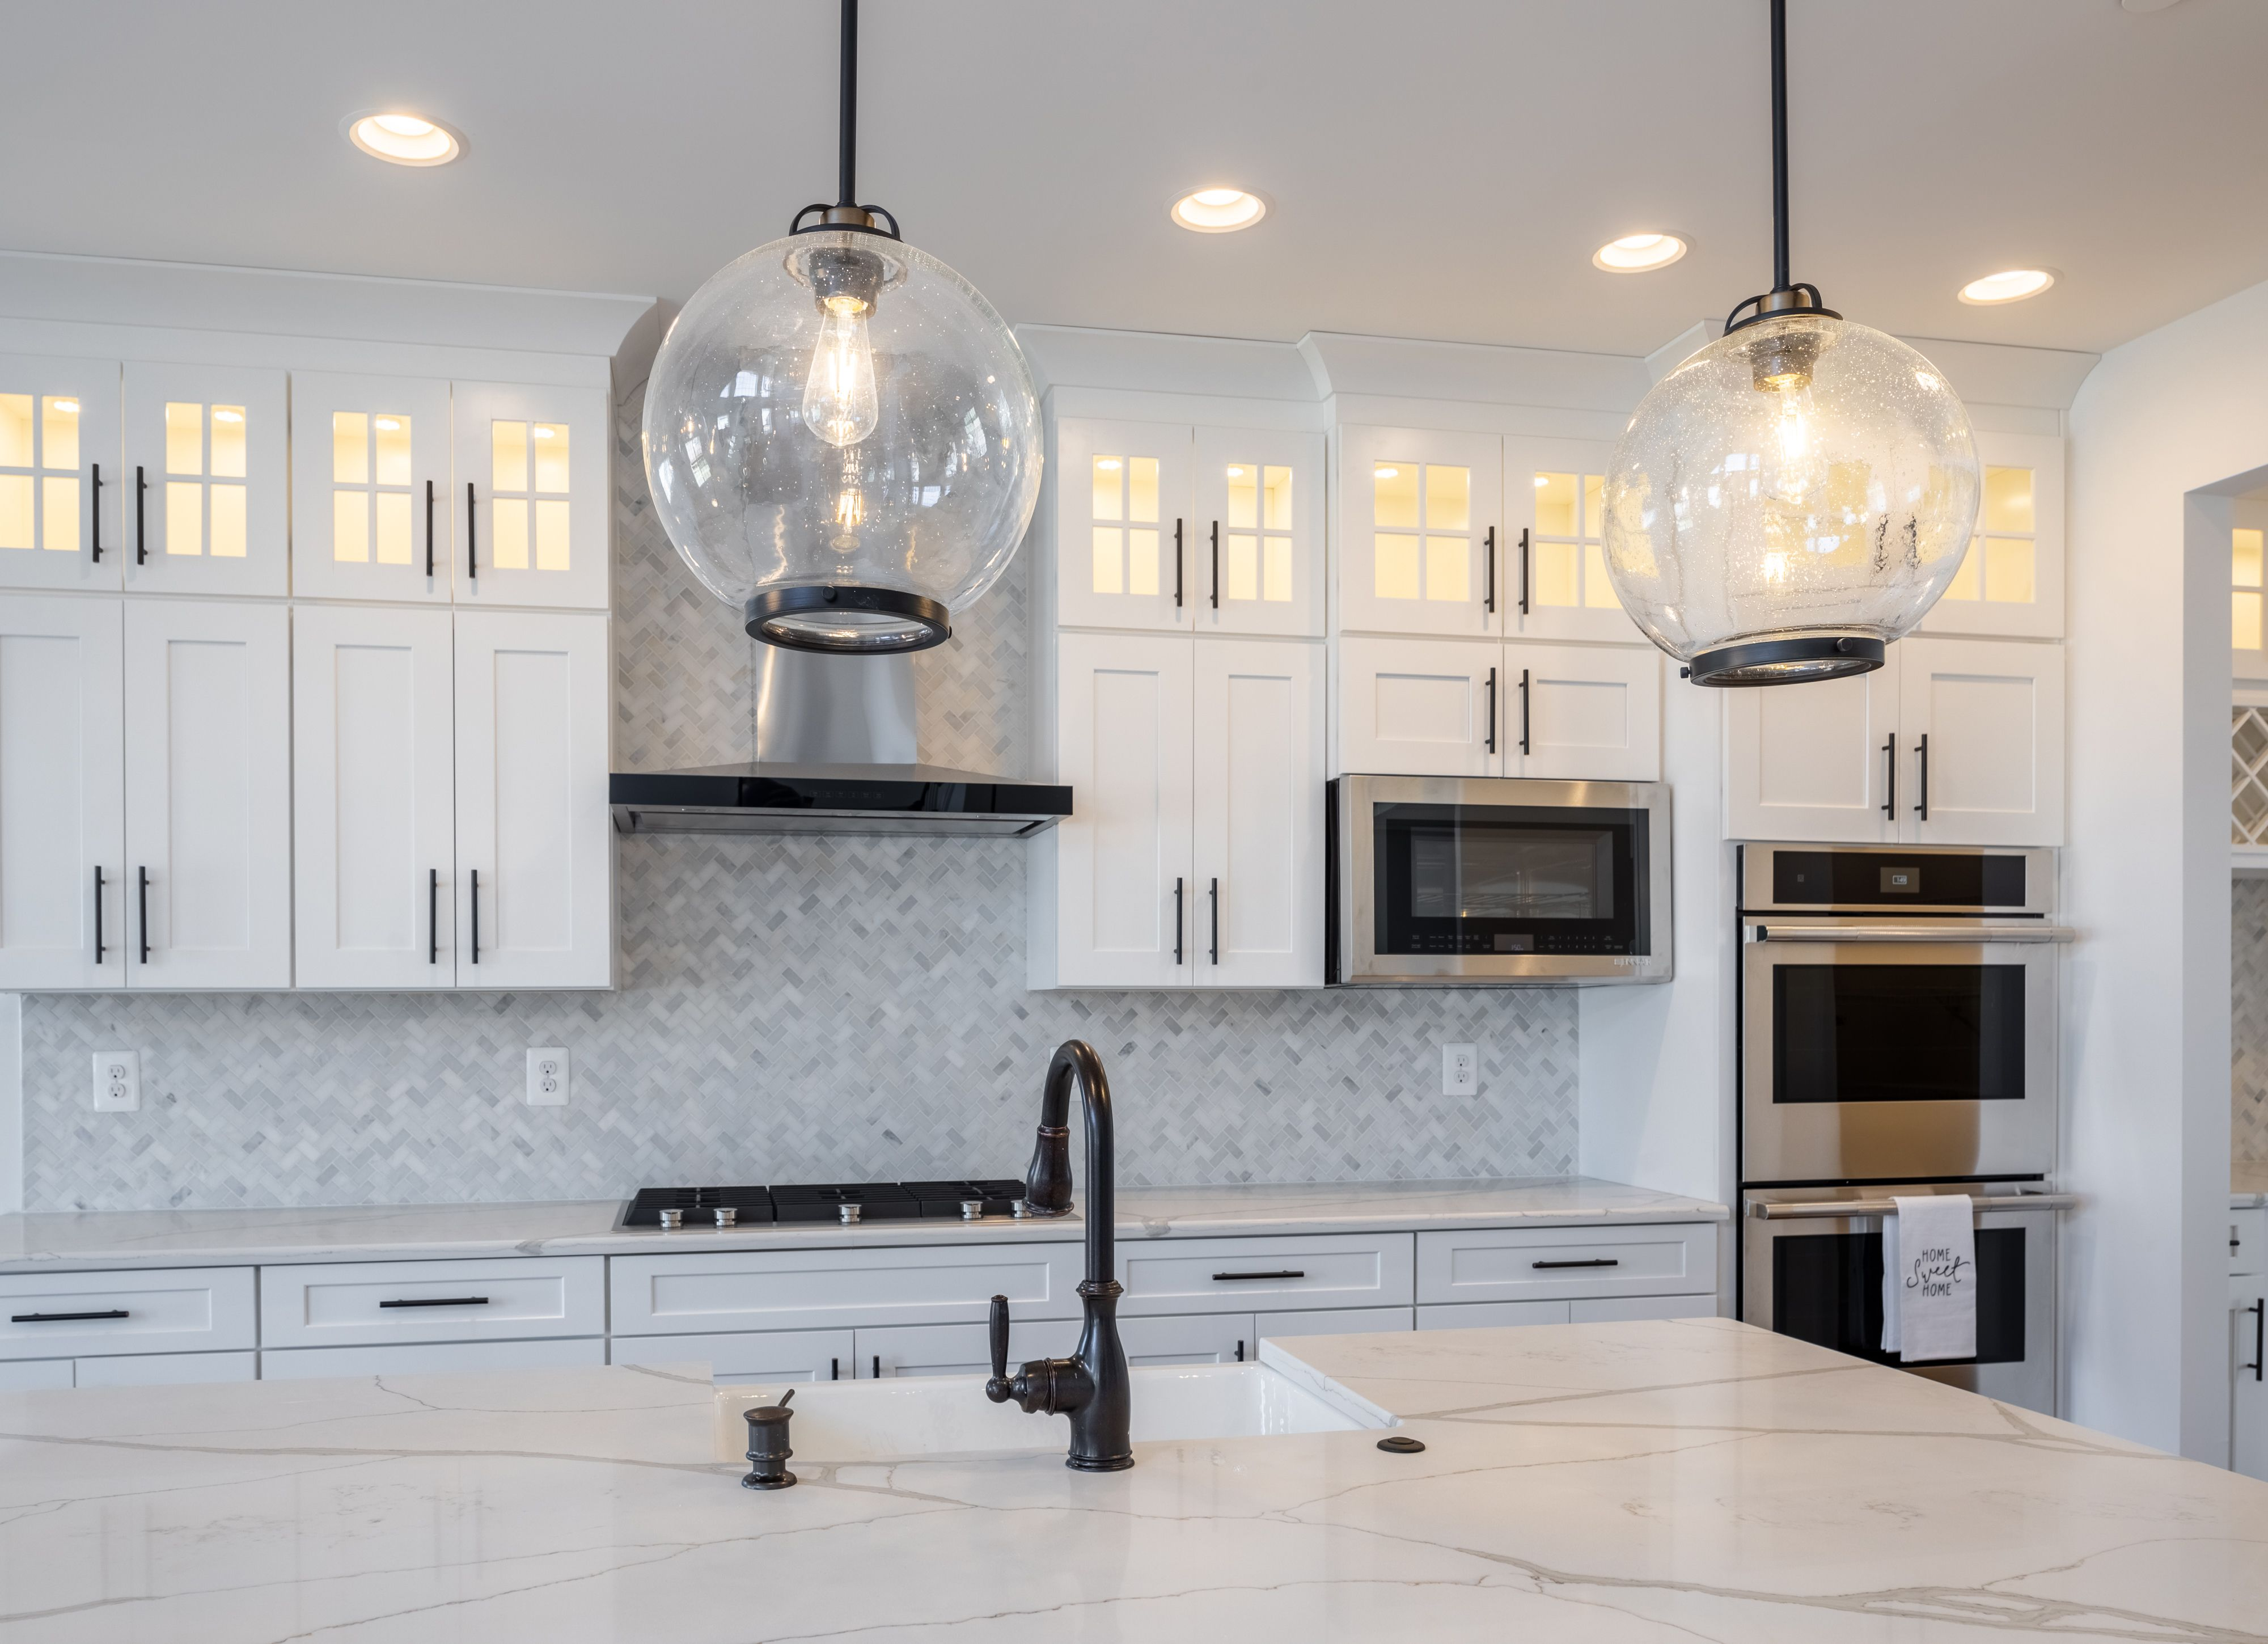 Kitchen featured in the Nottingham Farmhouse By Keystone Custom Homes in Lancaster, PA